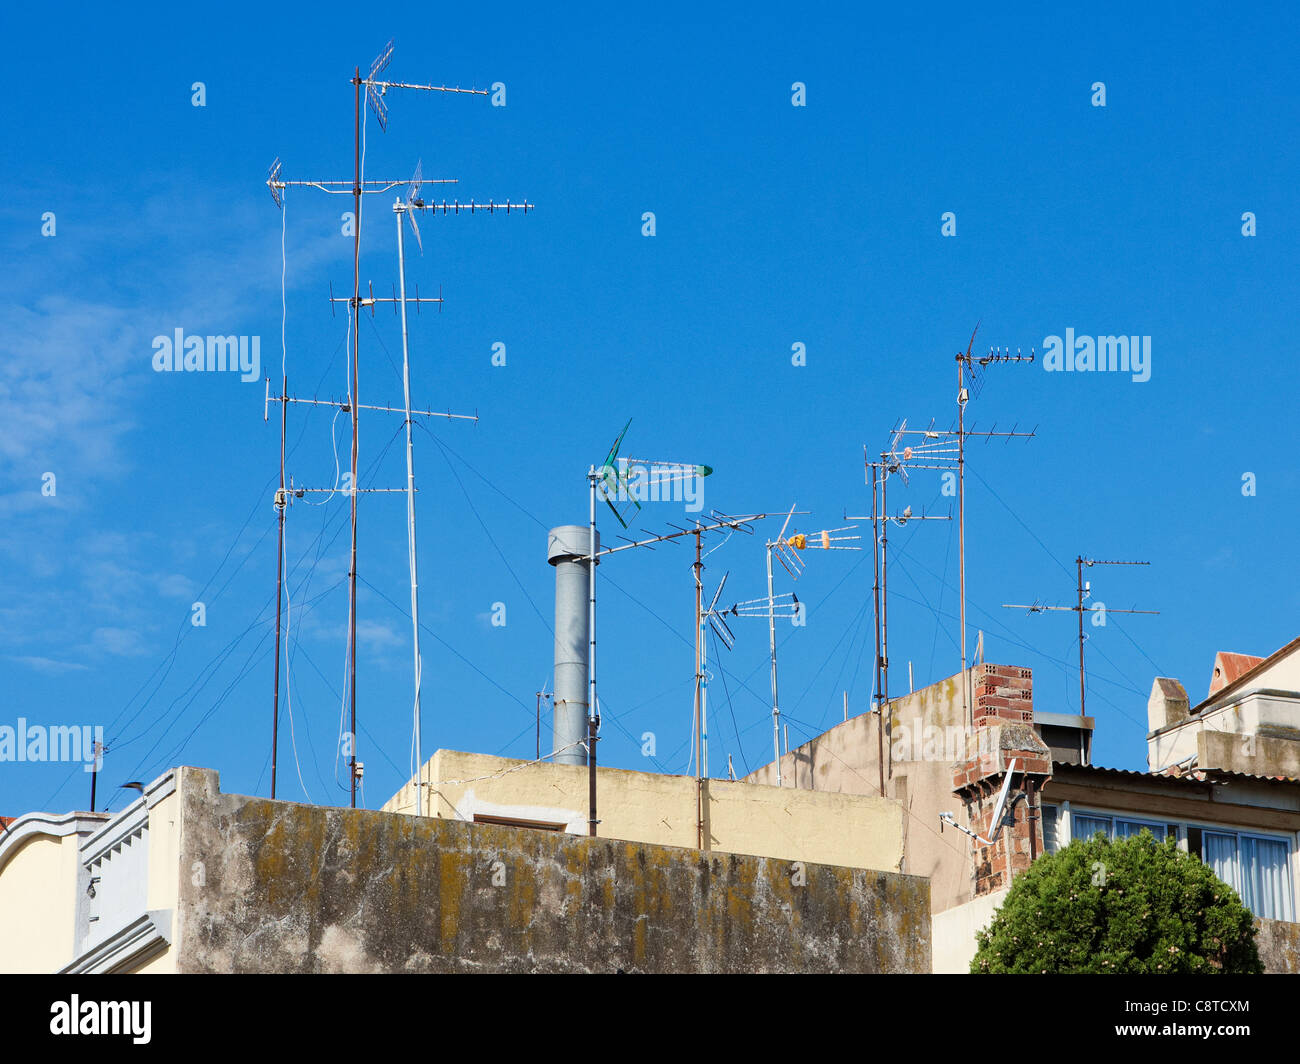 Receiving aerials. Tarragona, Catalonia, Spain. - Stock Image